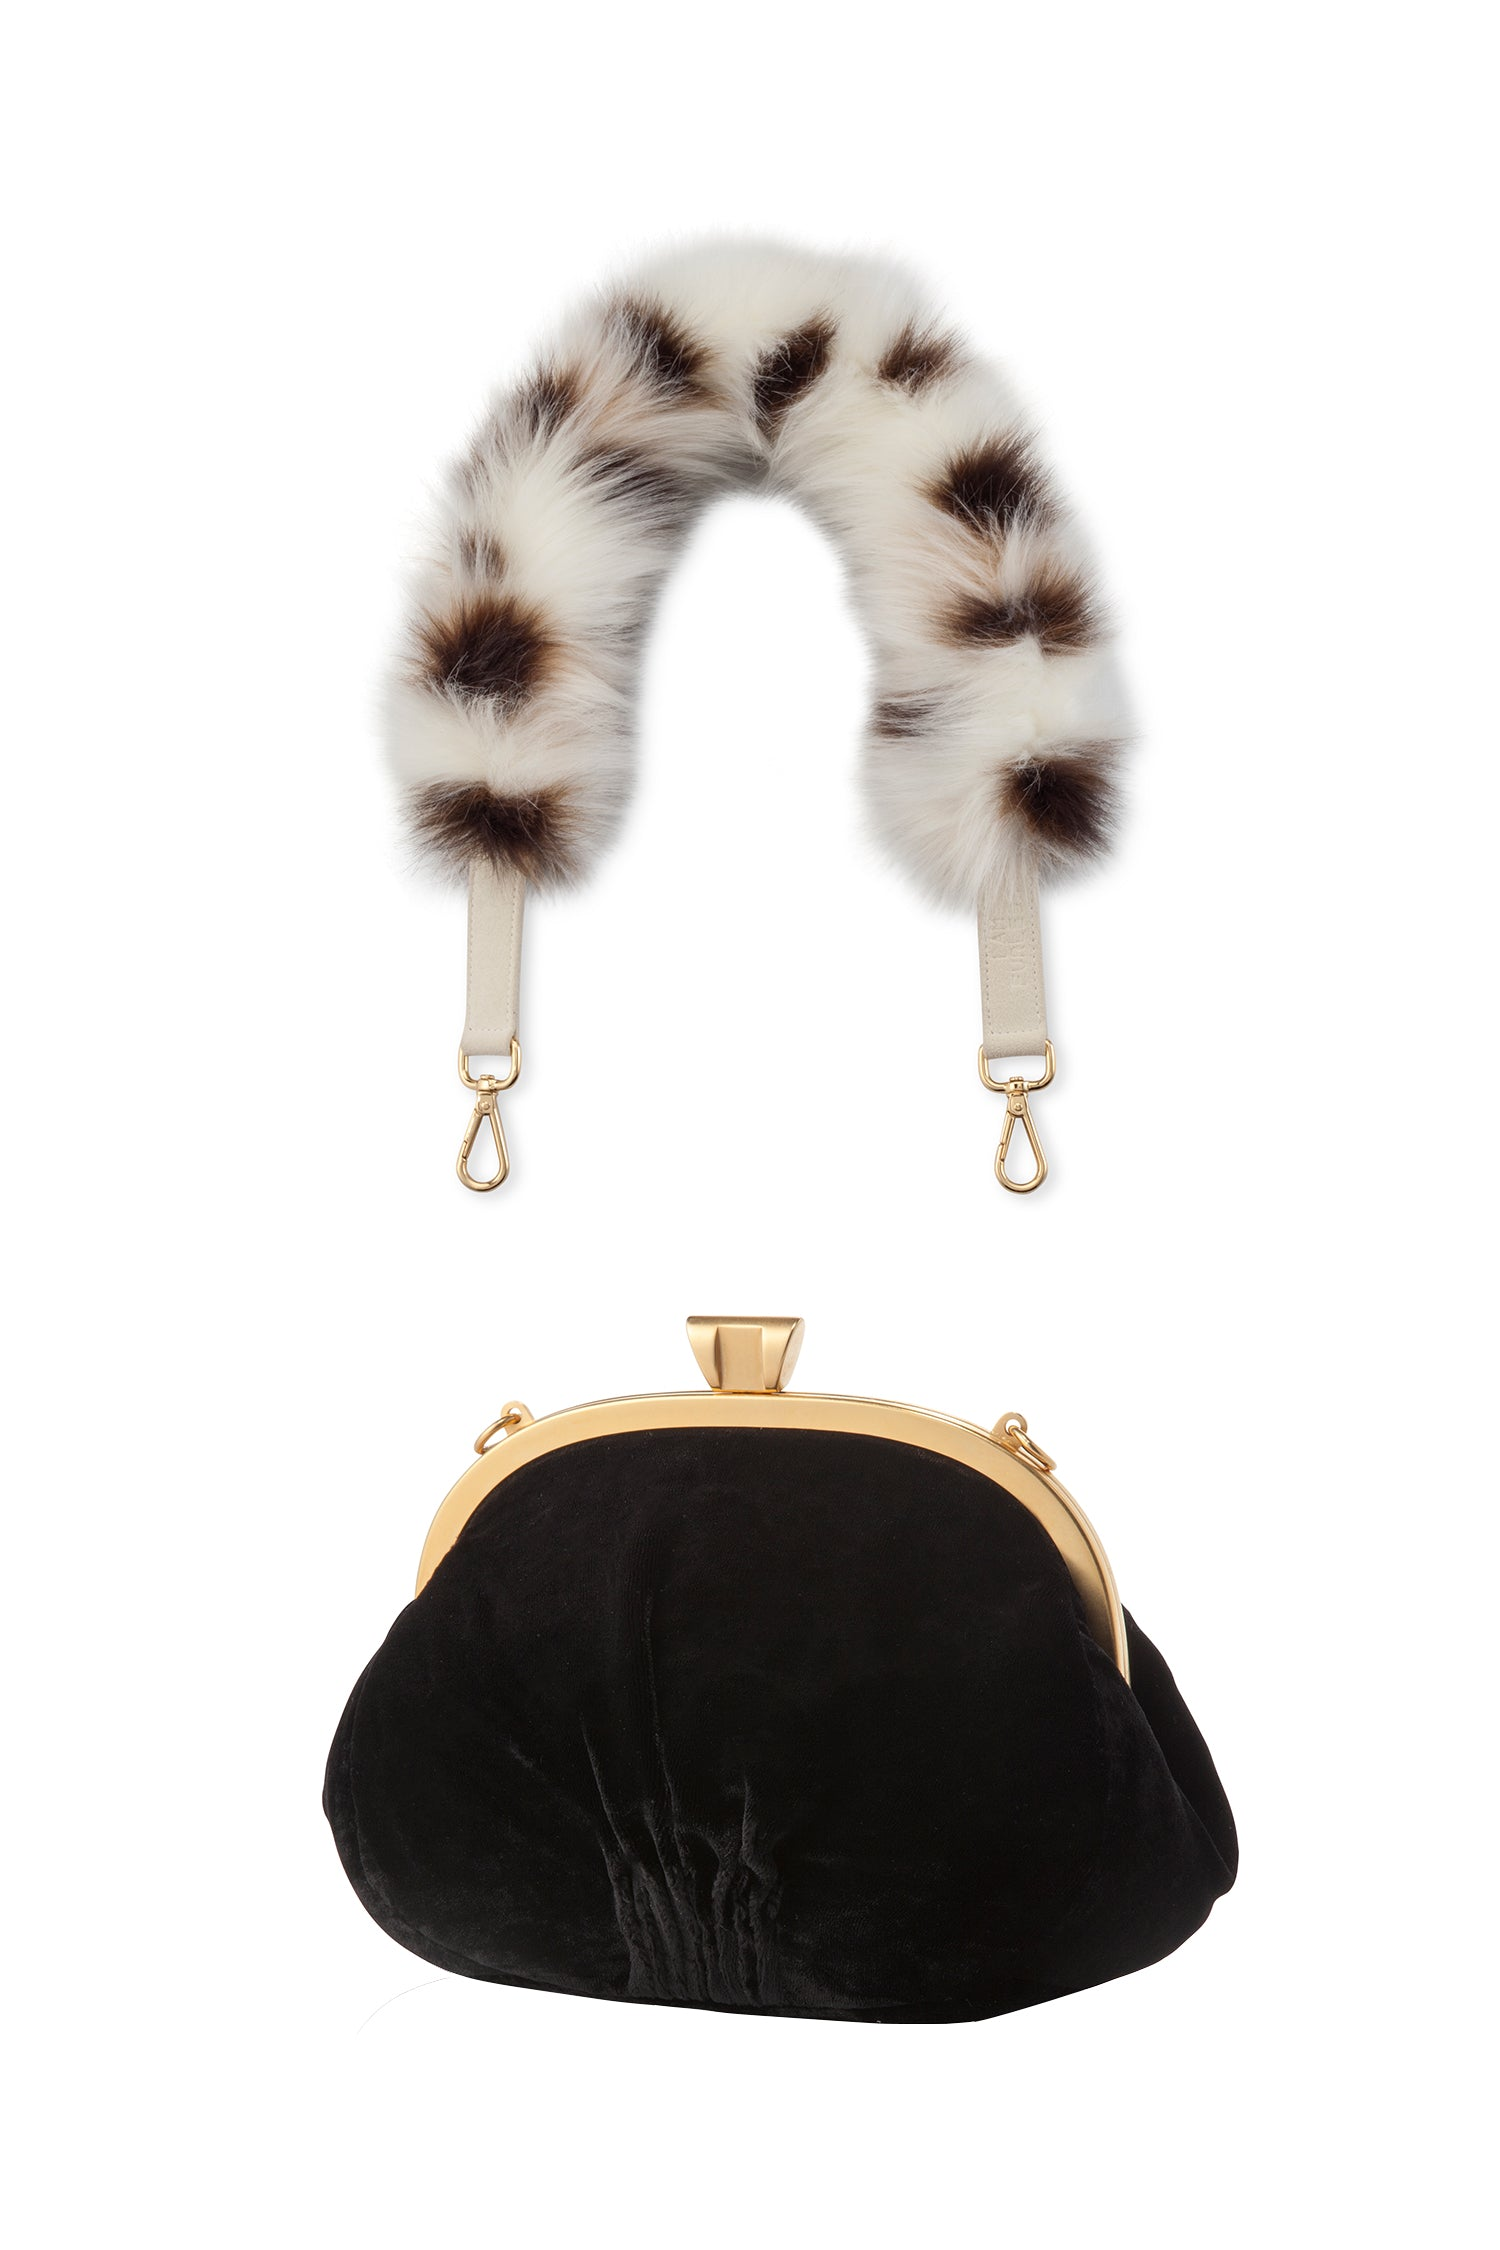 A Packshot Of Marei1998's Forget Me Not Velvet Purse In Black Color. Made From Lustrous Velvet And Topped With Gold Plated Brass Clasp For Smooth Closure. The Puffy Silhouette Is Accentuated By A Lush Faux Fur Strap In Contrasting Spotted Design, Creating A Contemporary Vintage Look. Front View.